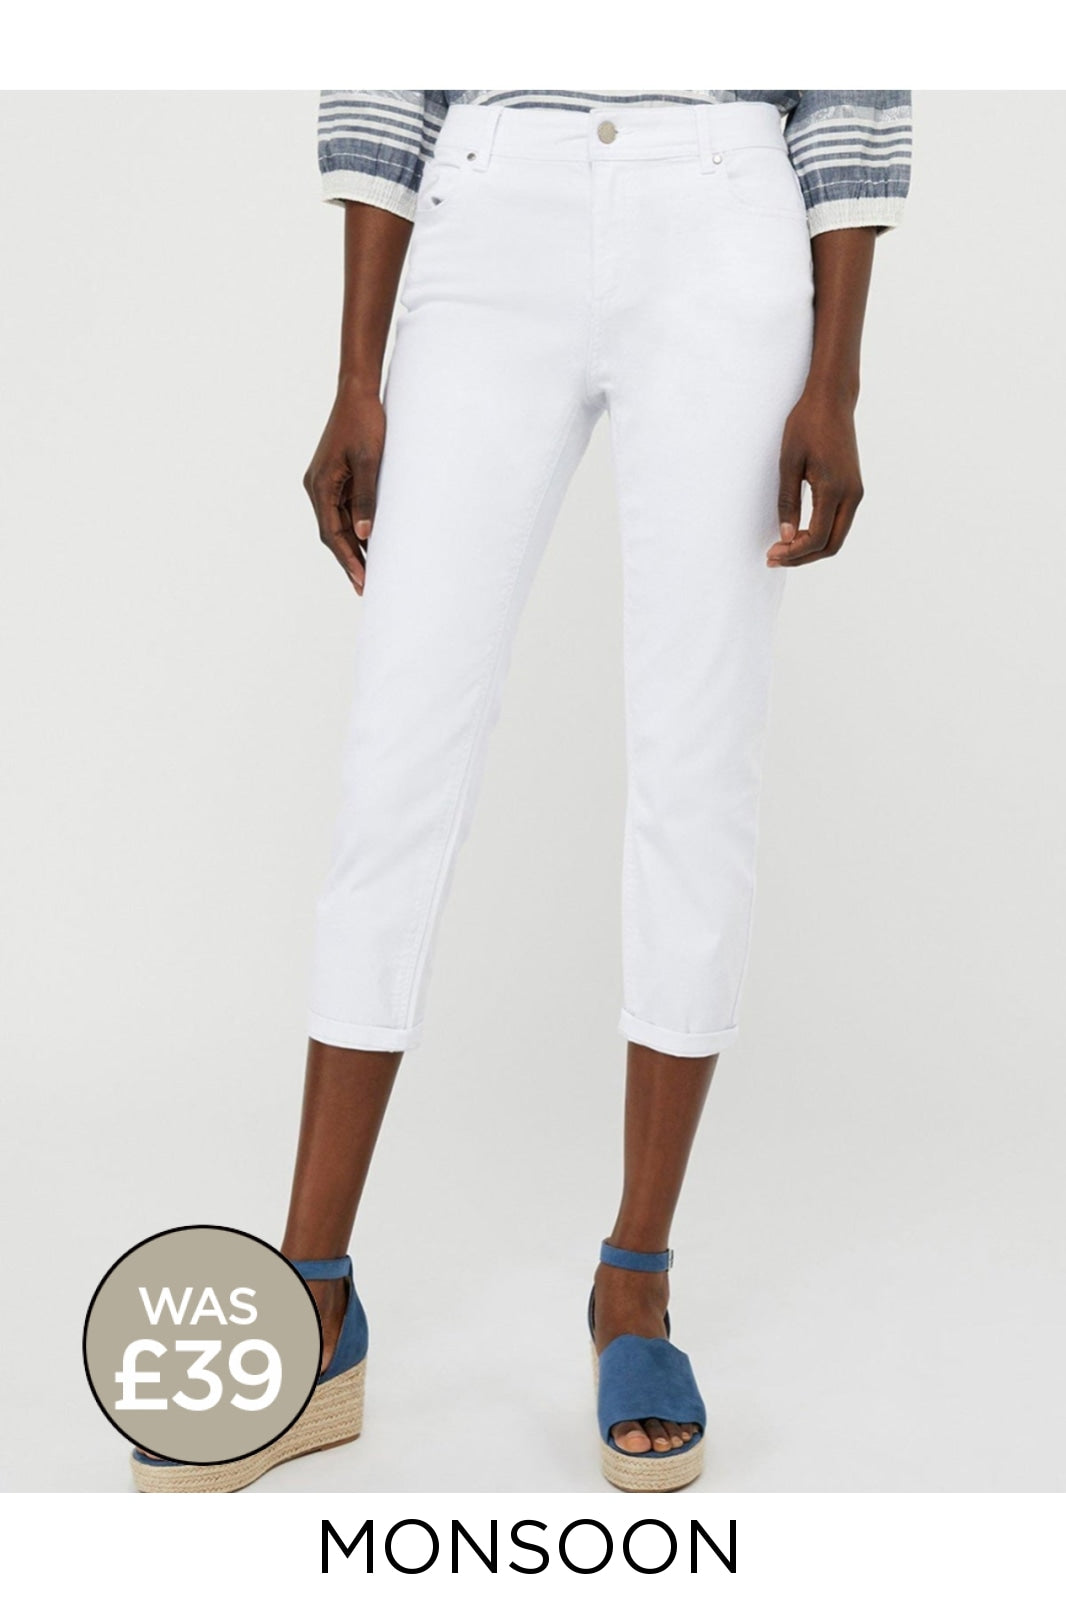 Monsoon Ex Monsoon Monsoon 'Idabella' Capri Jeans | 8 / White Secret Label